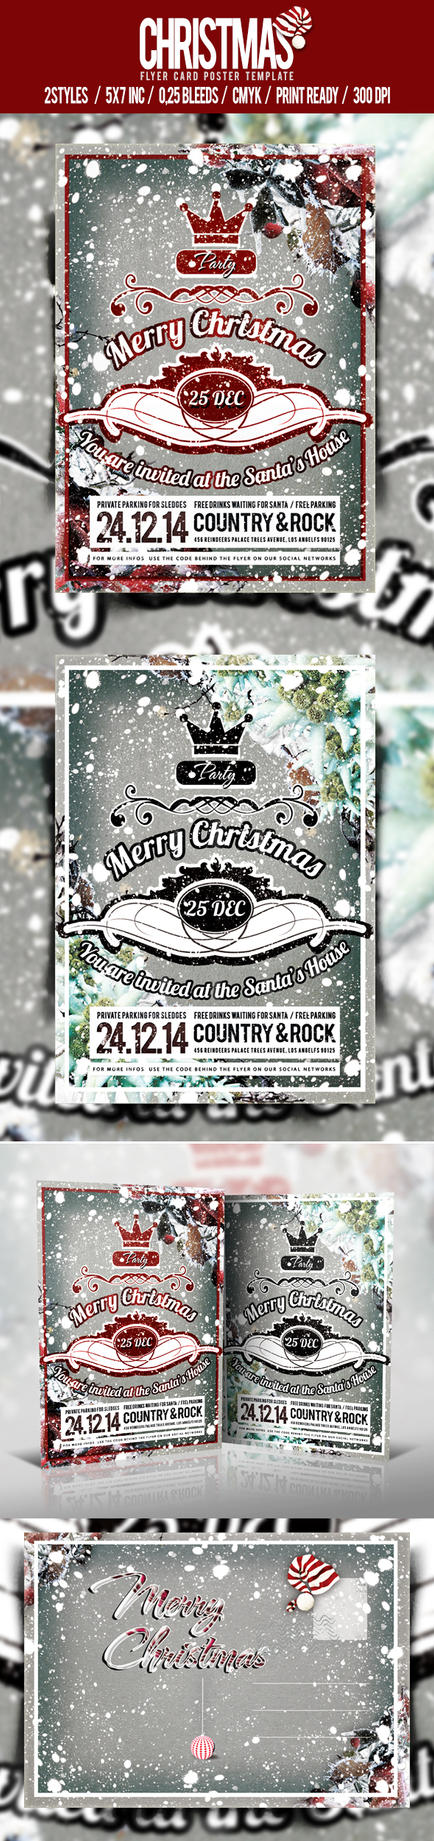 Christmas Flyer/Poster Vol.3 by elisamaggit